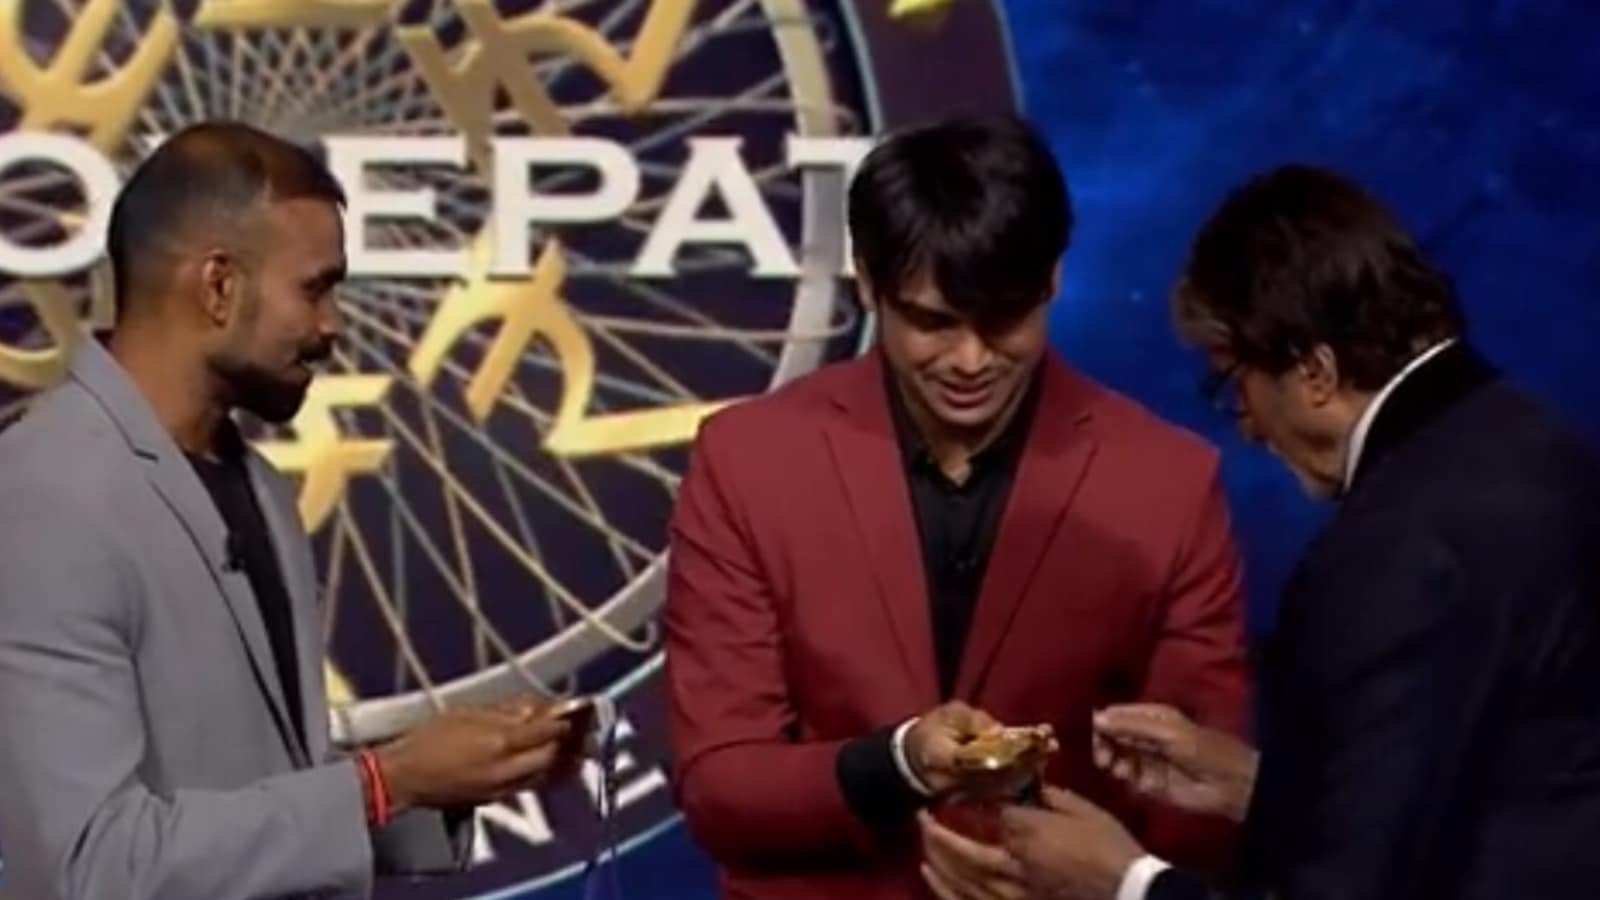 KBC 13: Amitabh Bachchan asks Neeraj Chopra, PR Sreejesh if he can contact their Olympic medals, says 'I will not put on it'